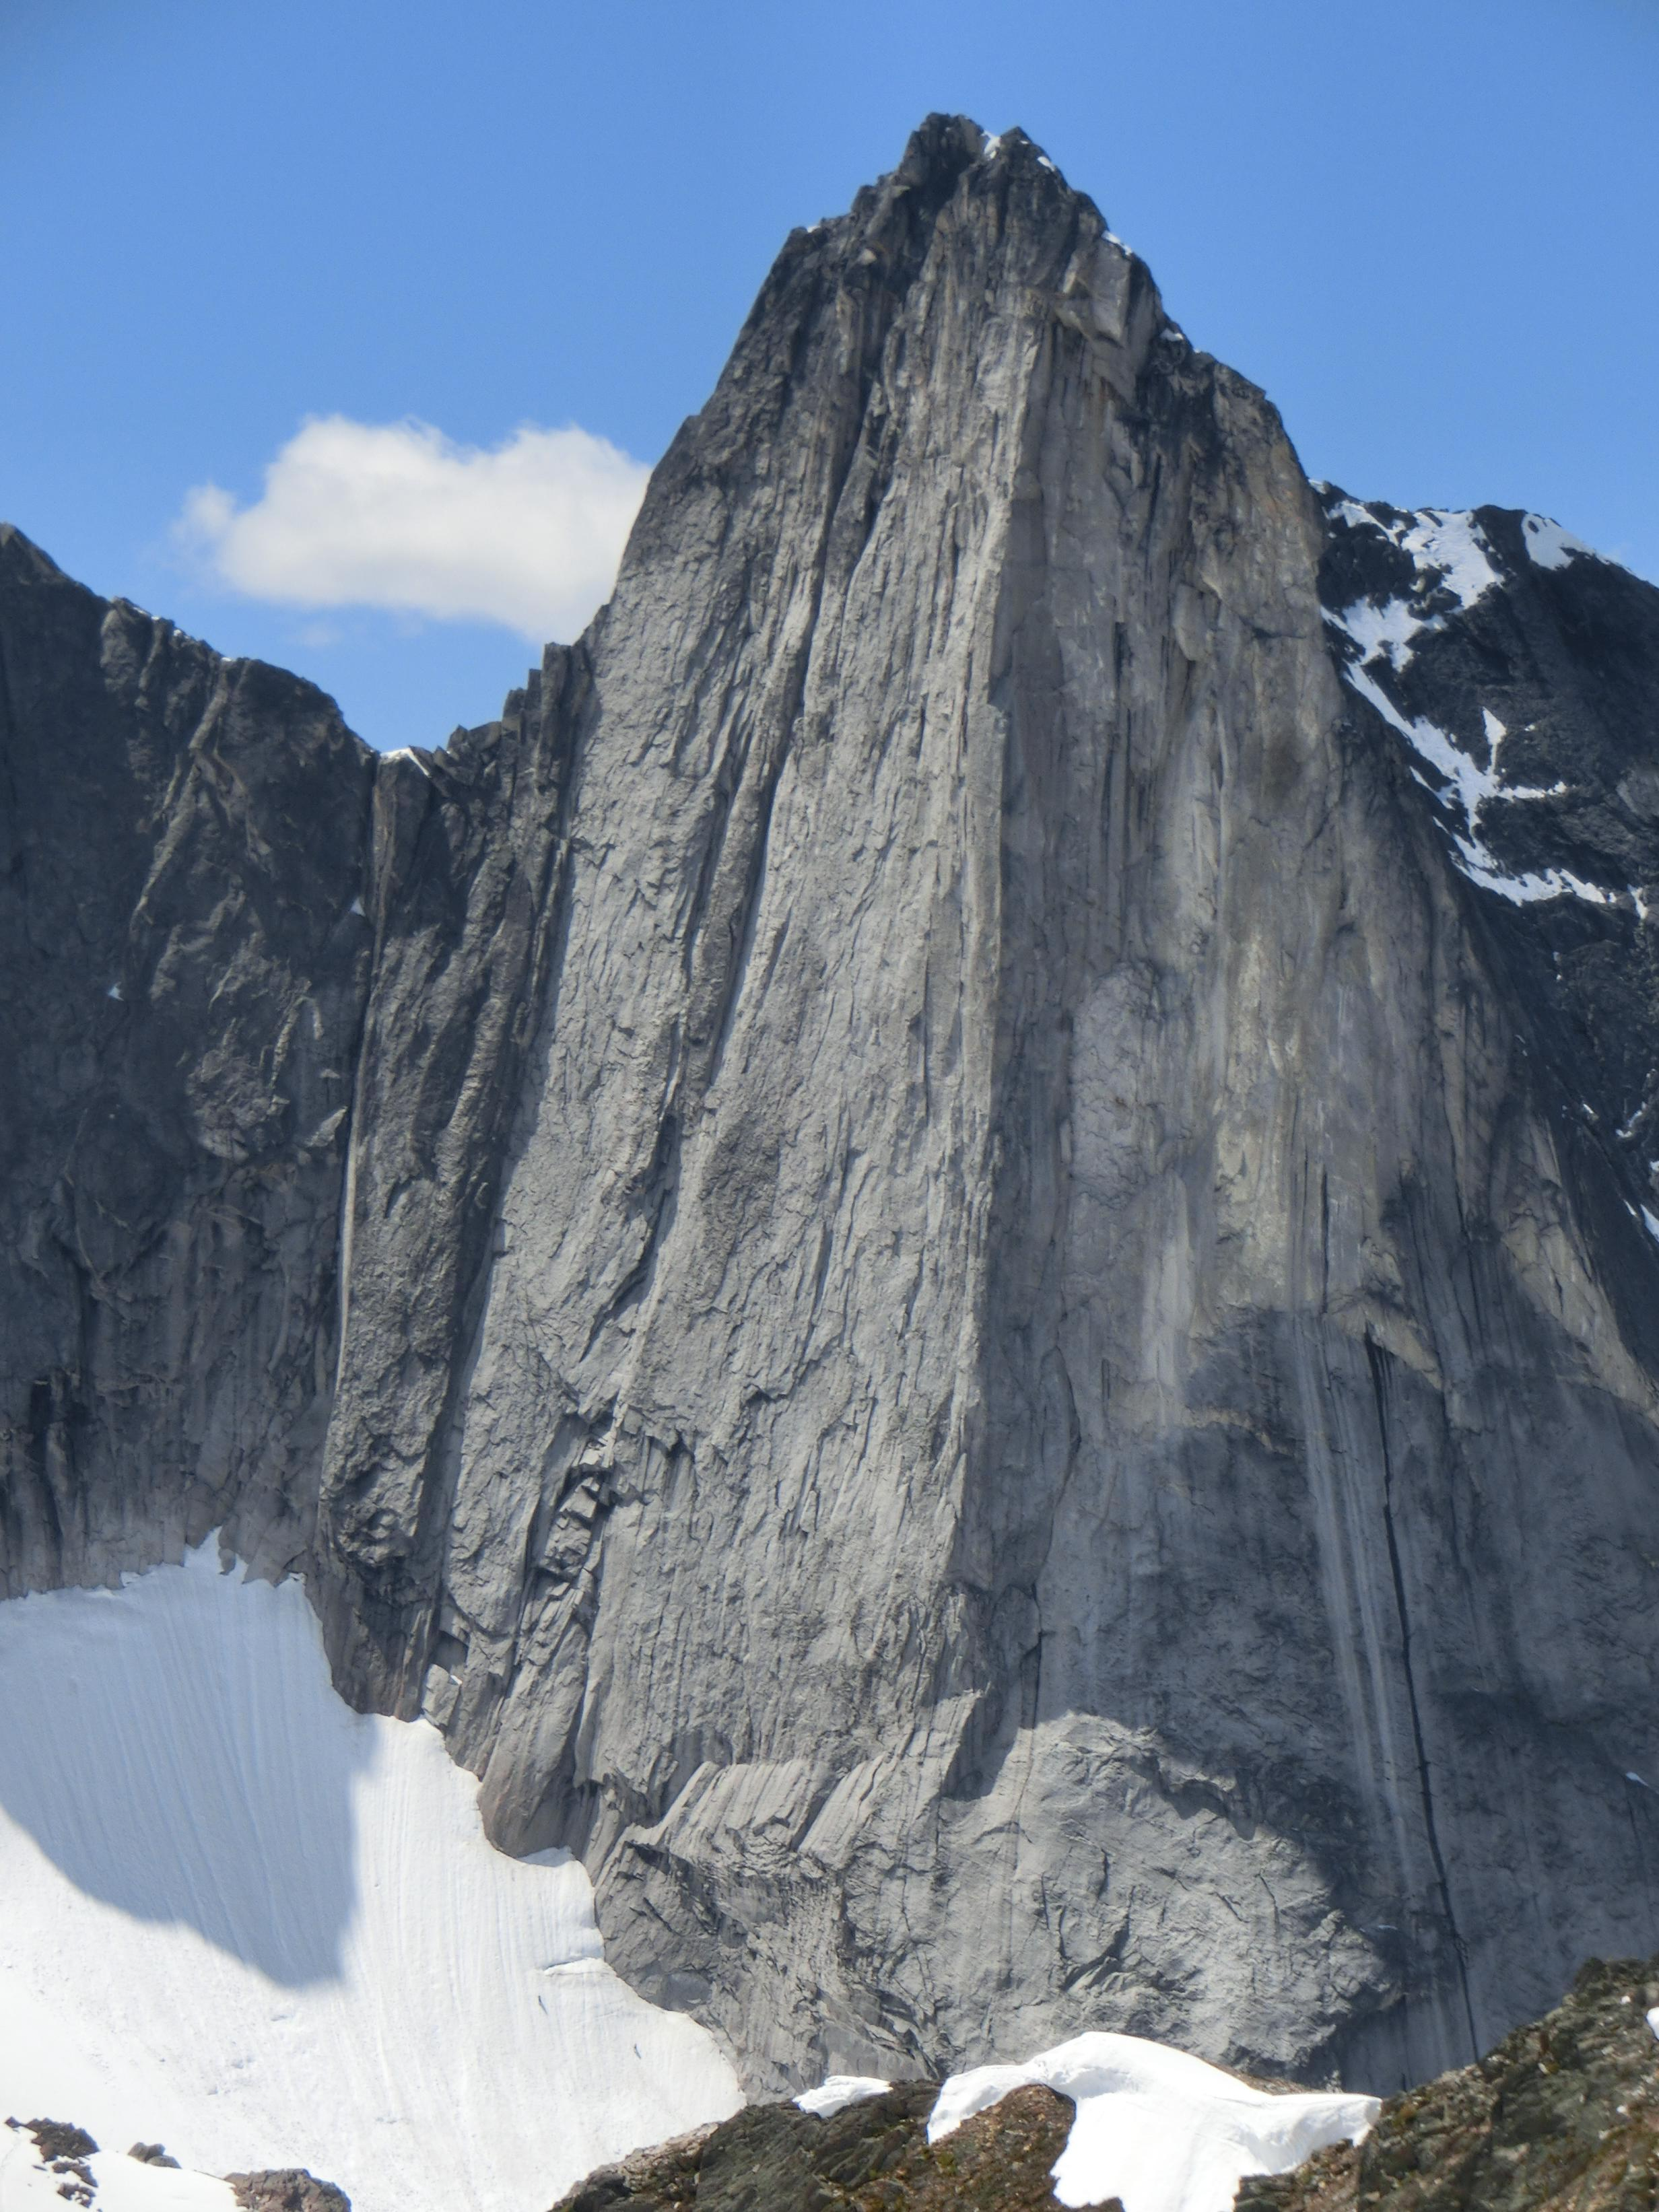 Wall Tower as viewed from the north shoulder of Hall Peak. The group climbed a line just left of the prominent arete in the center of the frame. [Photo] Kale Semar